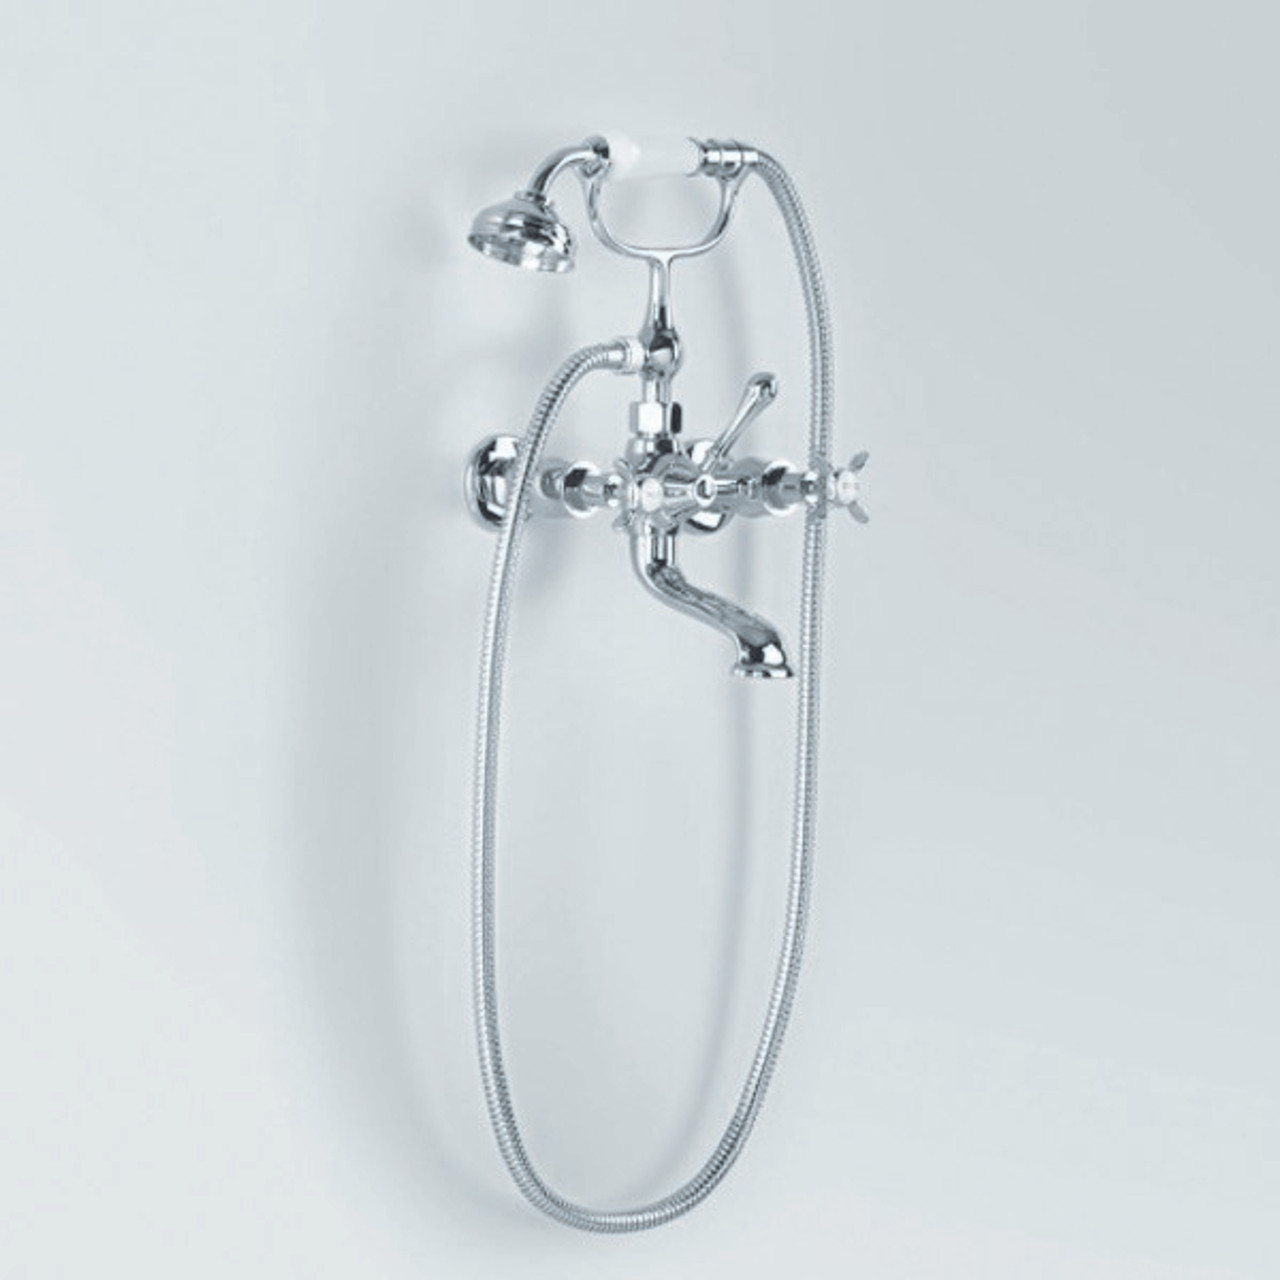 Astra Walker Olde English Bath Mixer With Handshower A51.20C